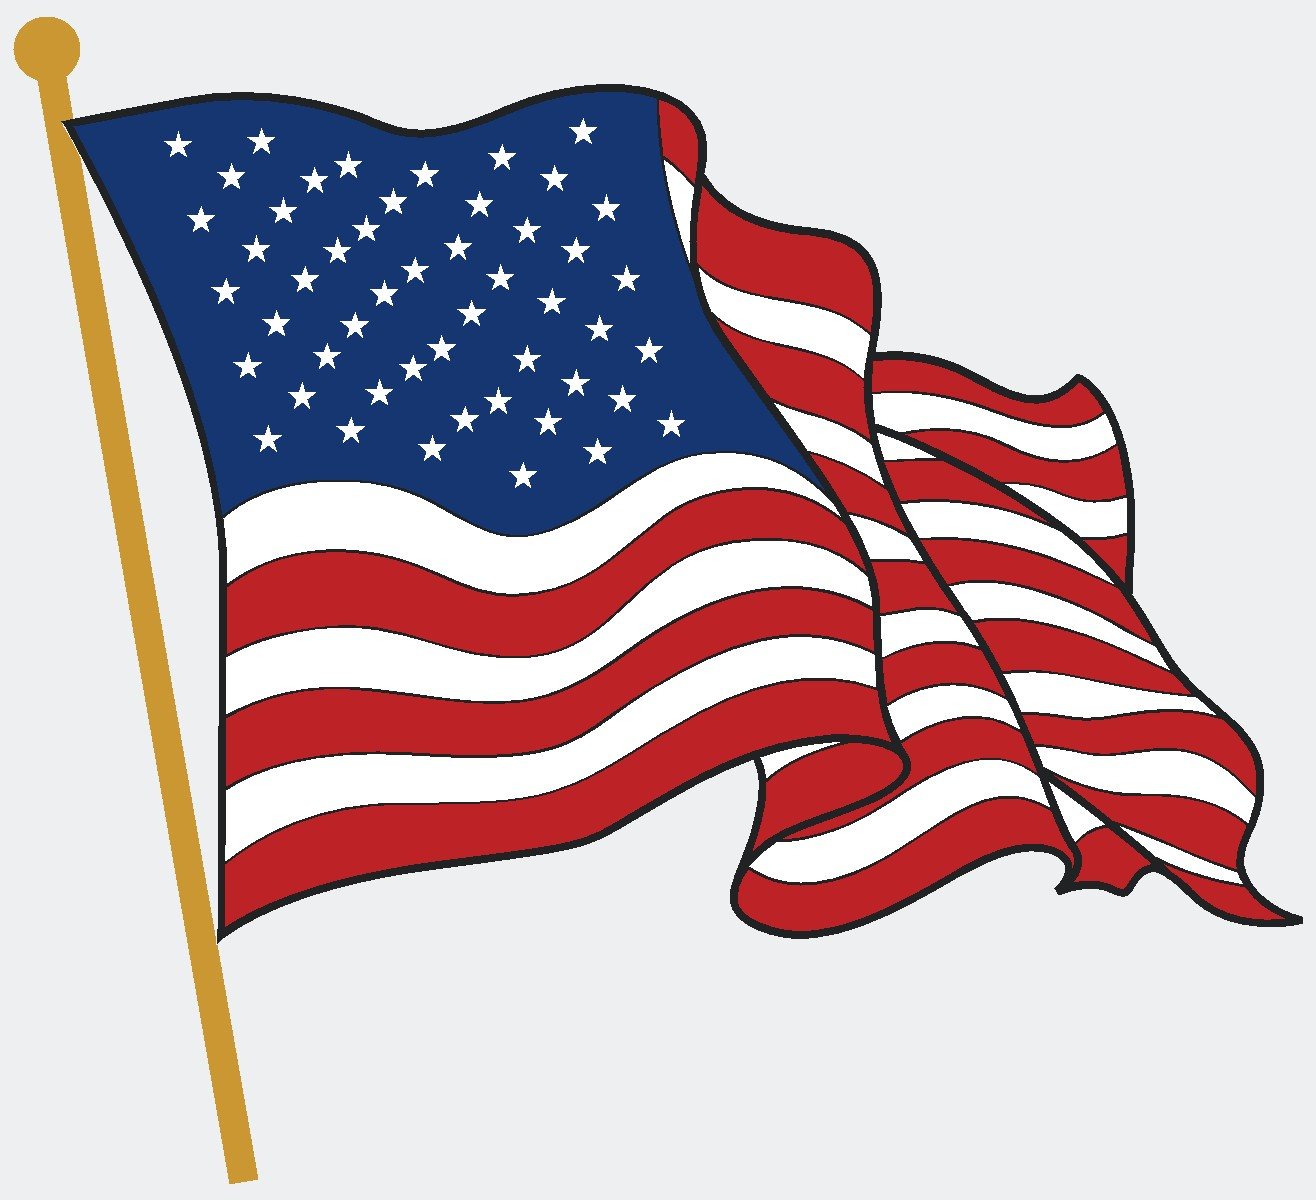 Waving american flag clipart picture free Waving American Flag Clipart | Free download best Waving American ... picture free